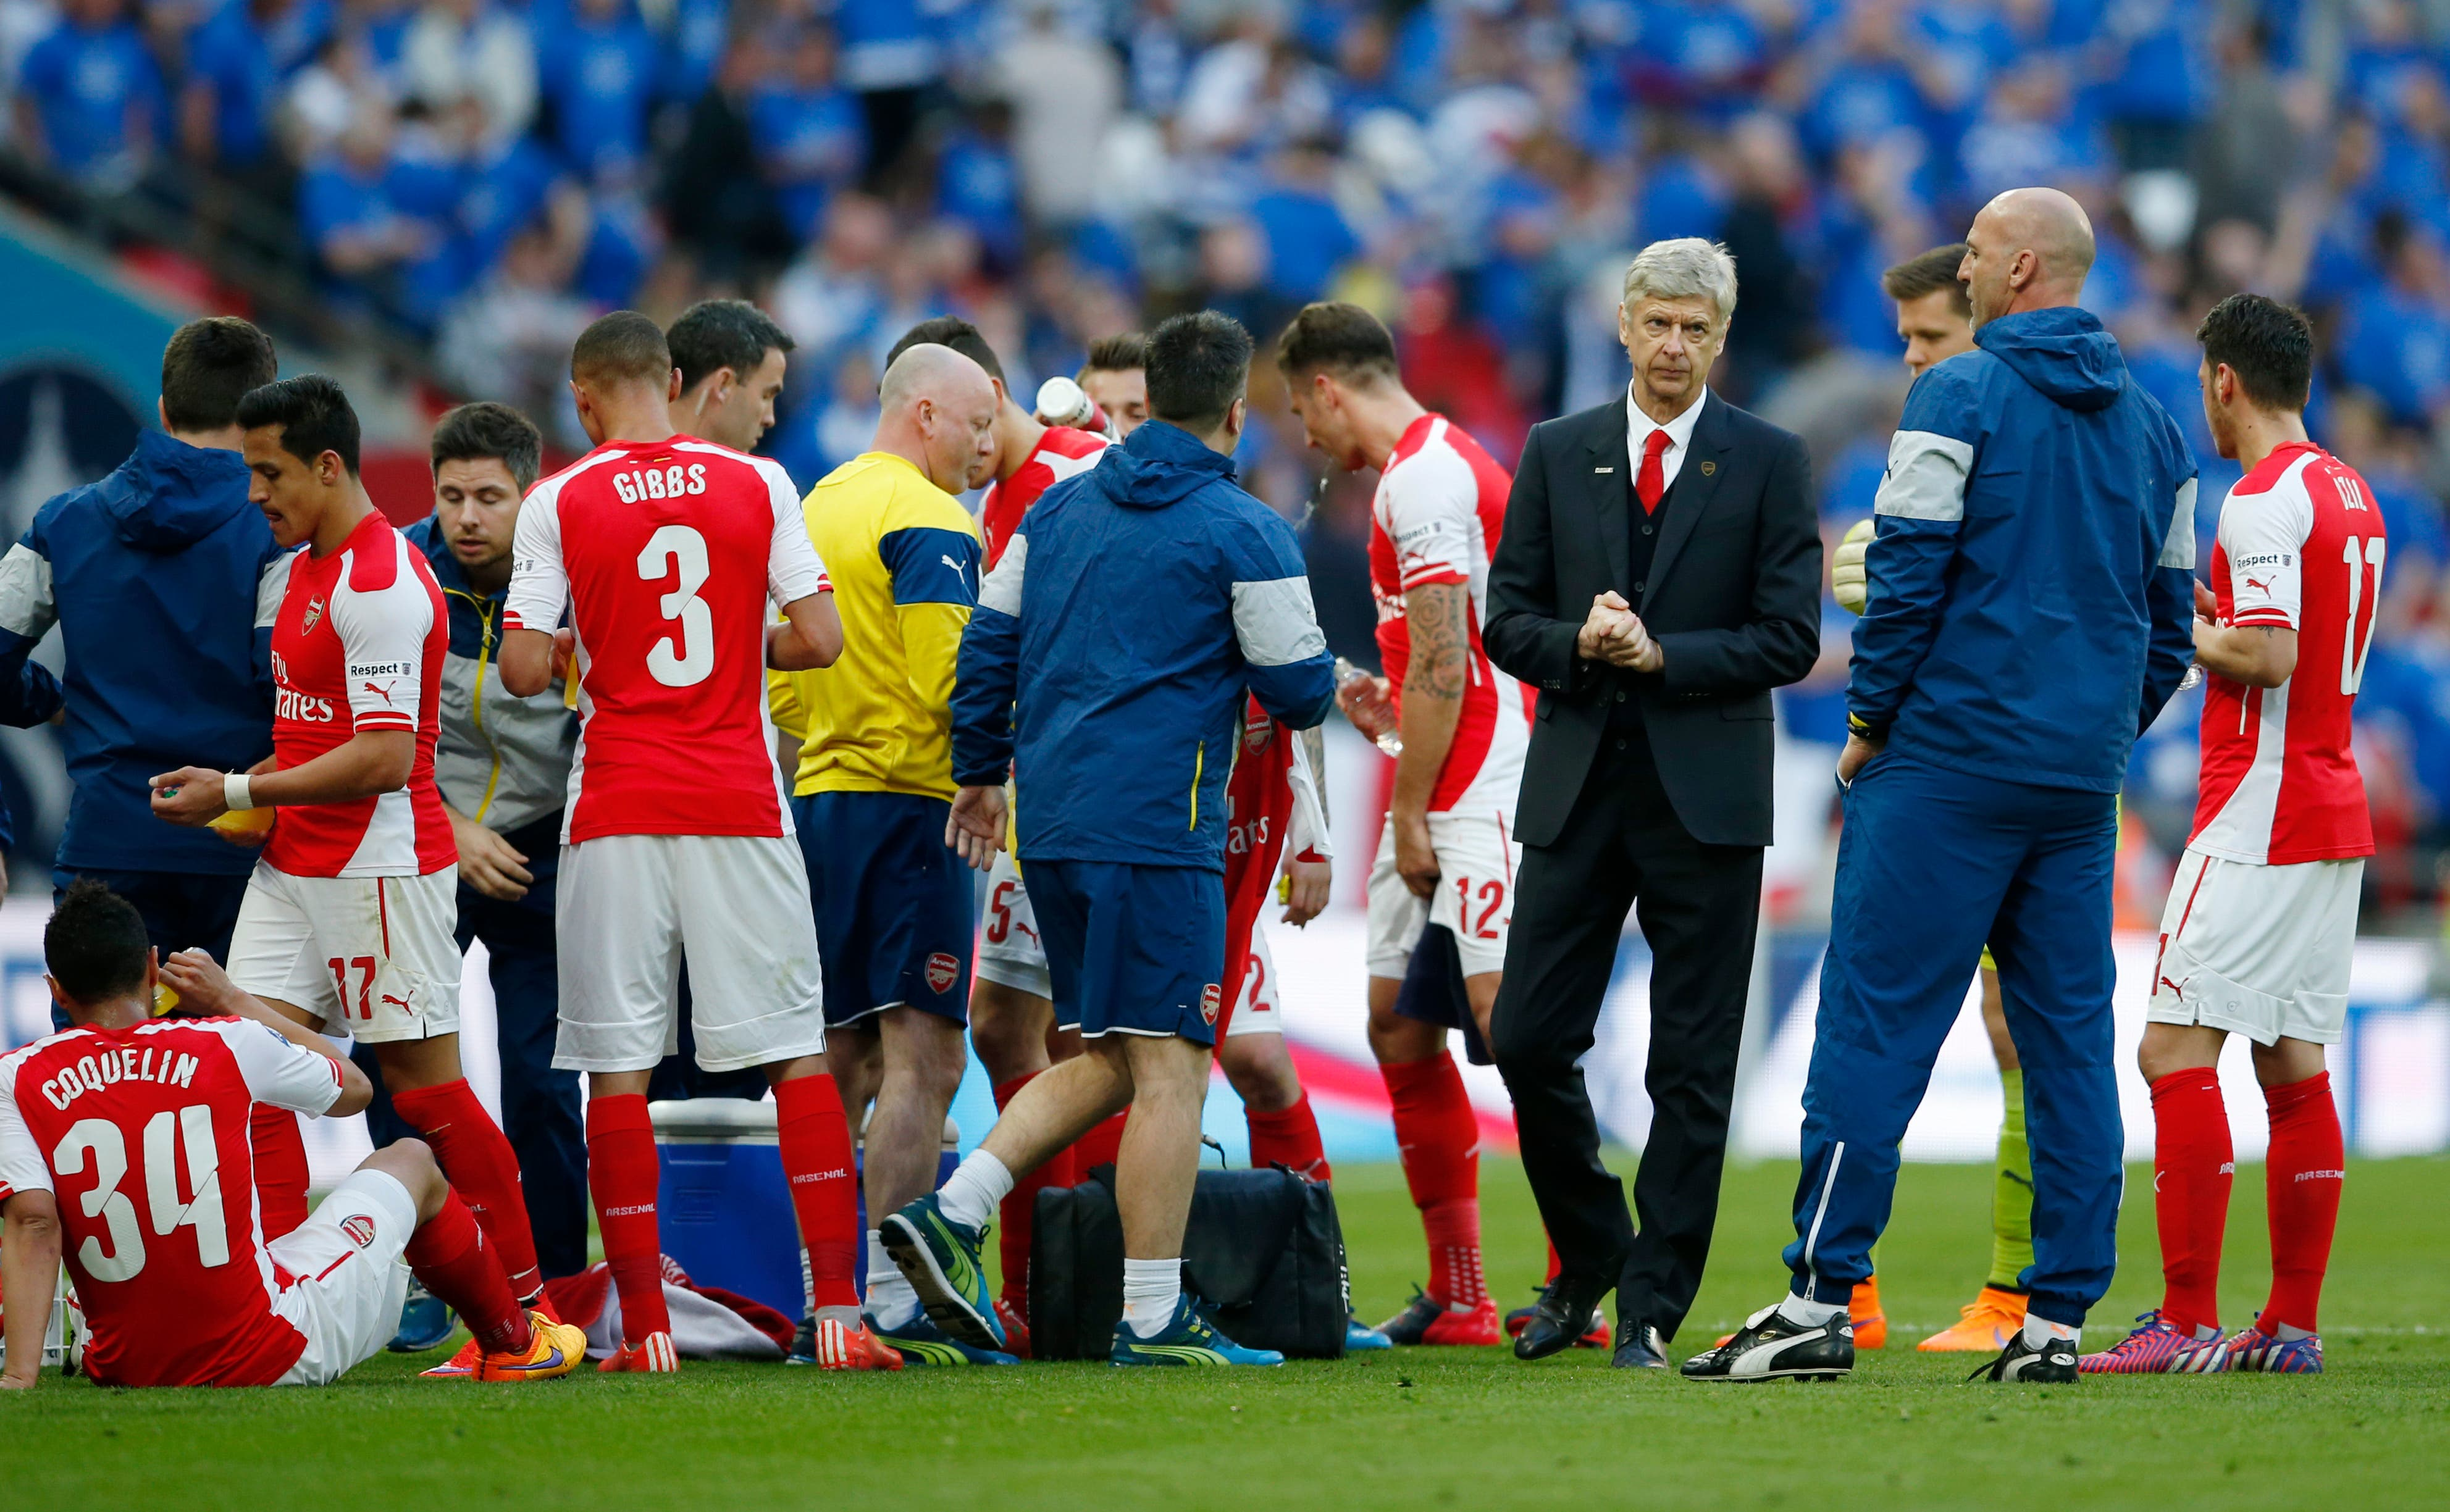 Football - Reading v Arsenal - FA Cup Semi Final - Wembley Stadium - 18/4/15 Arsenal manager Arsene Wenger with his players before extra time Action Images via Reuters / John Sibley Livepic